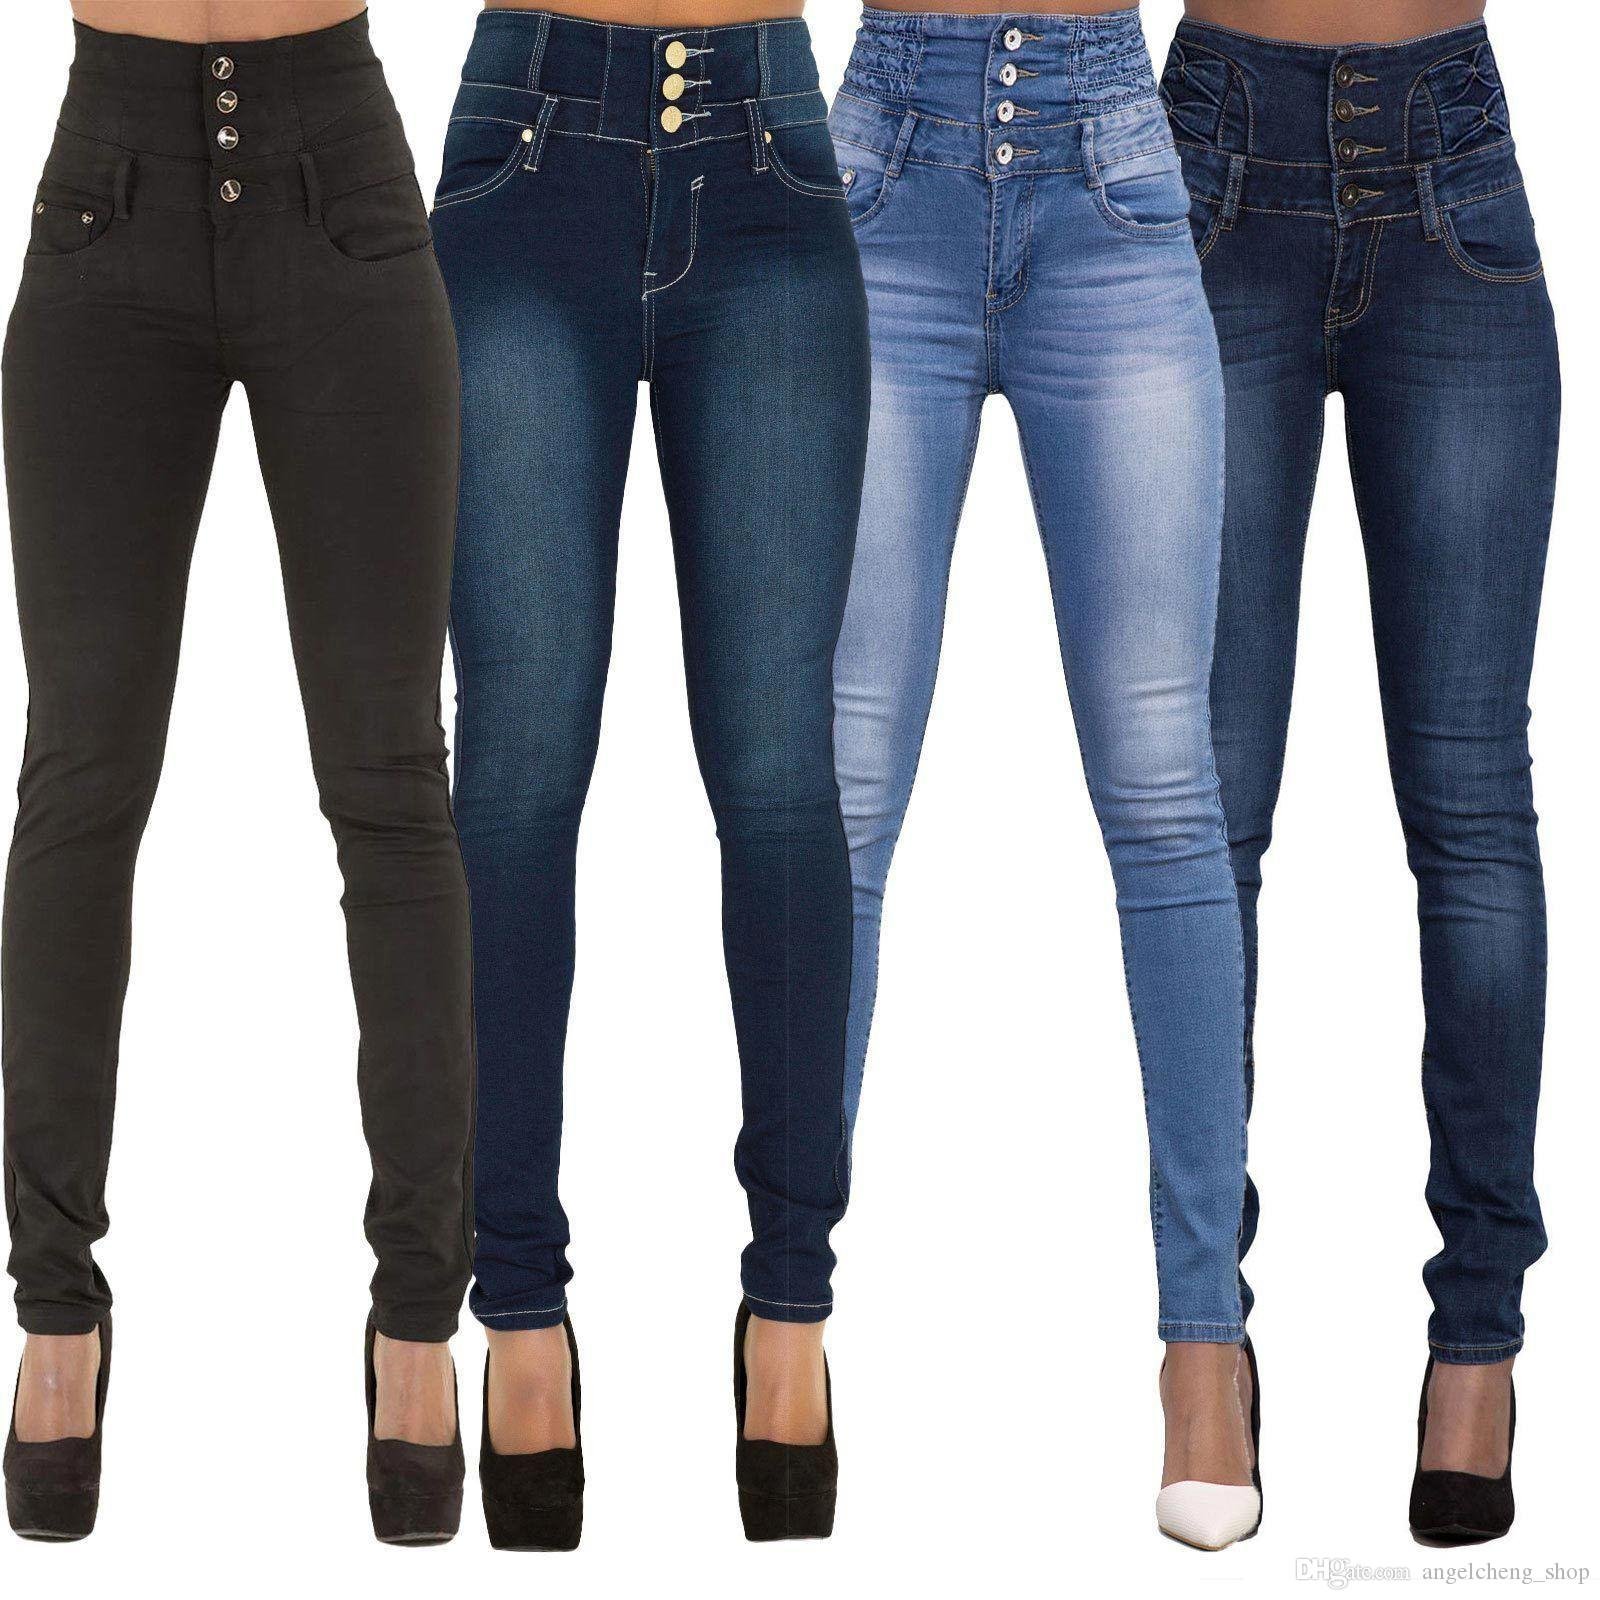 2020 Hot Women Ladies Jeans Women Denim Skinny Jeggings Jeans